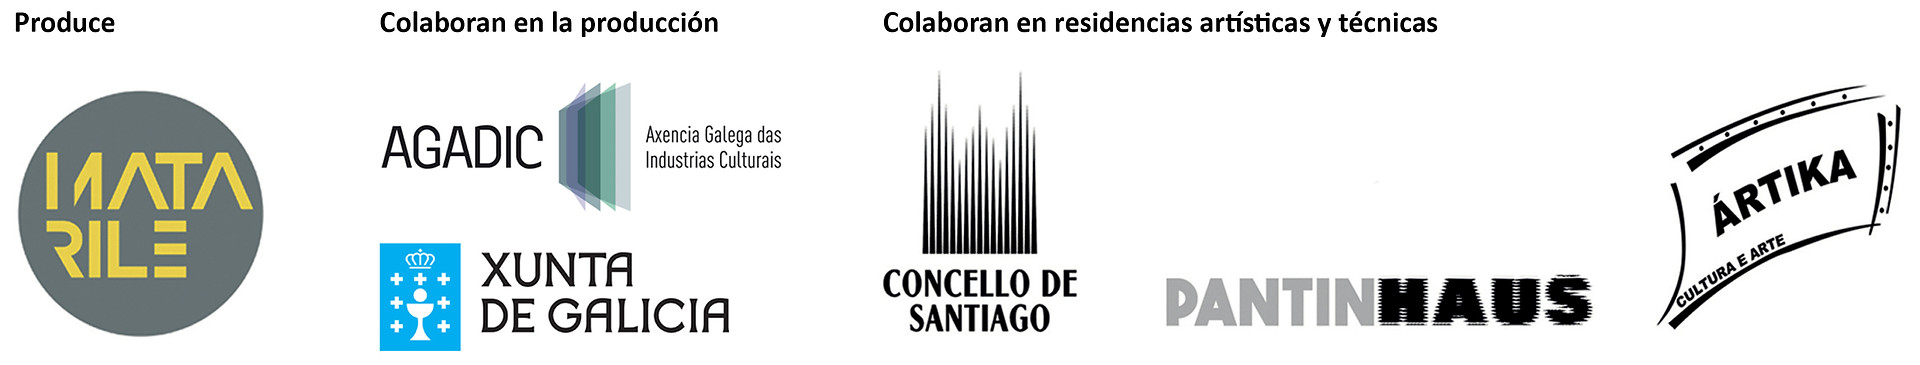 DESCARGA LOGOS